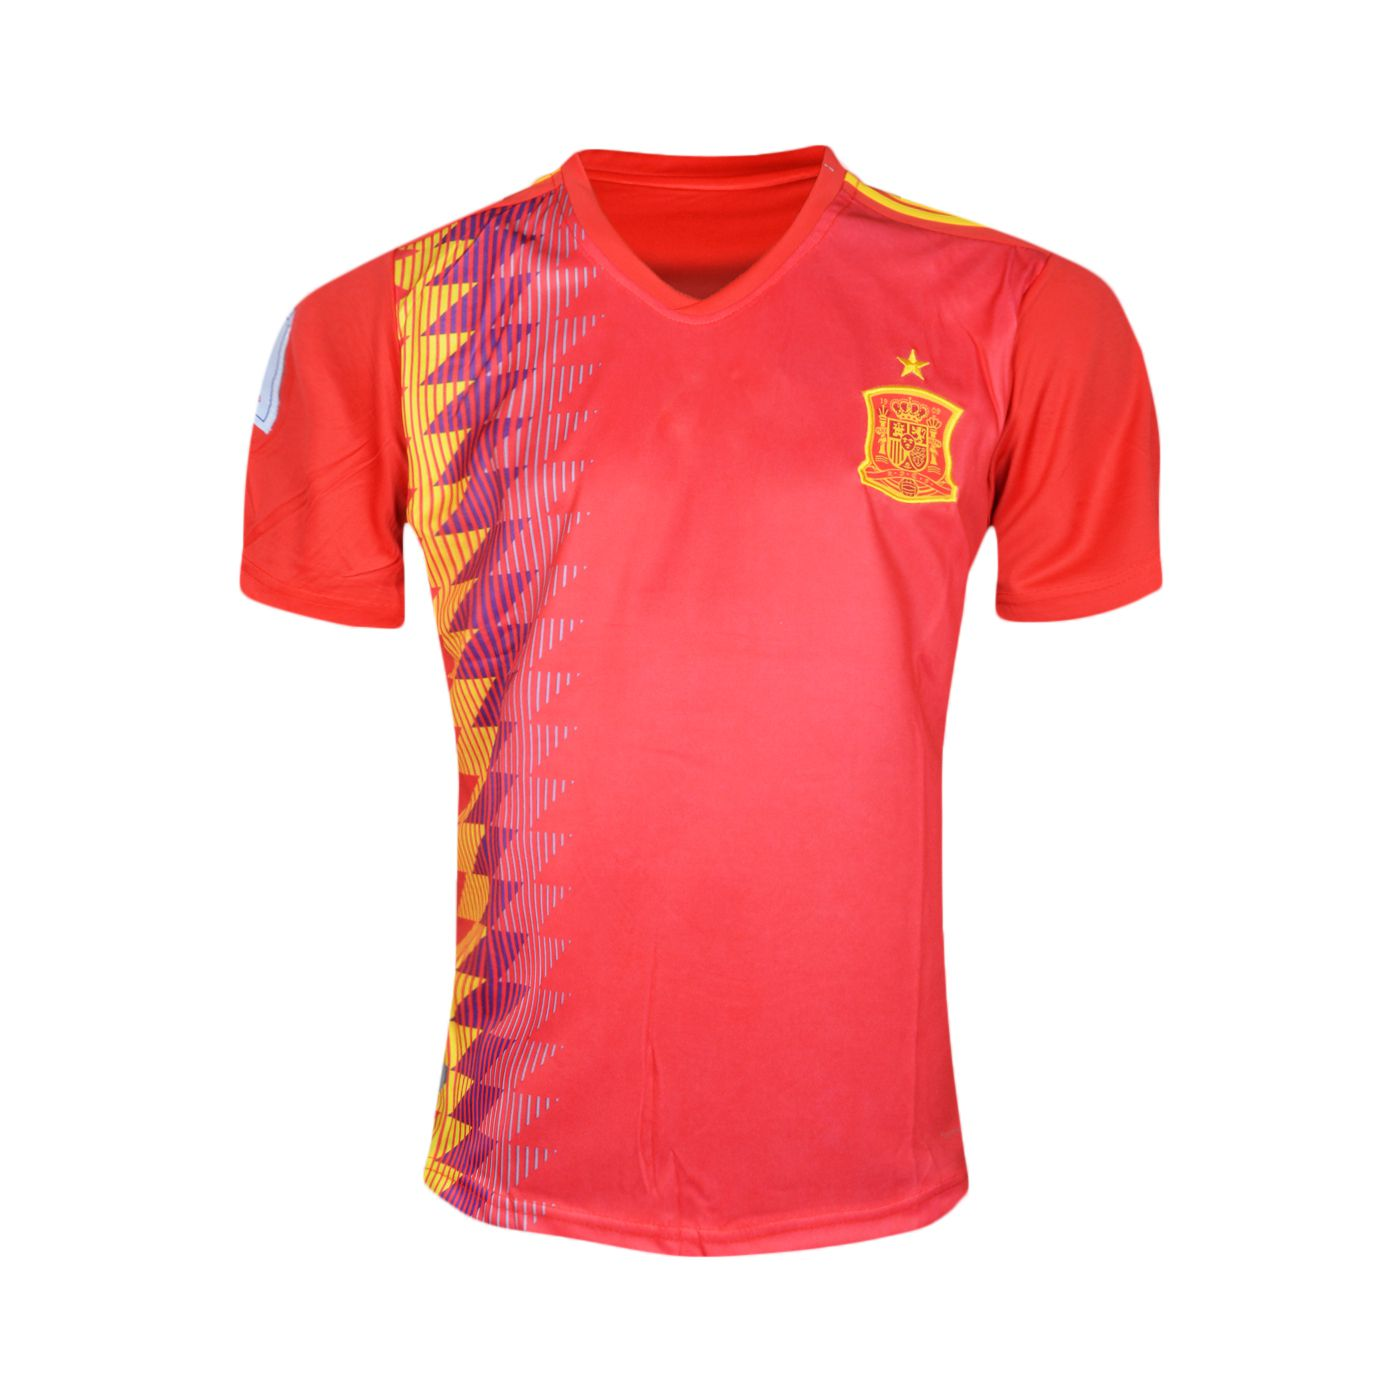 0cde4fef693 FIFA World Cup Spain National Team Home Red Football Jersey  Buy ...